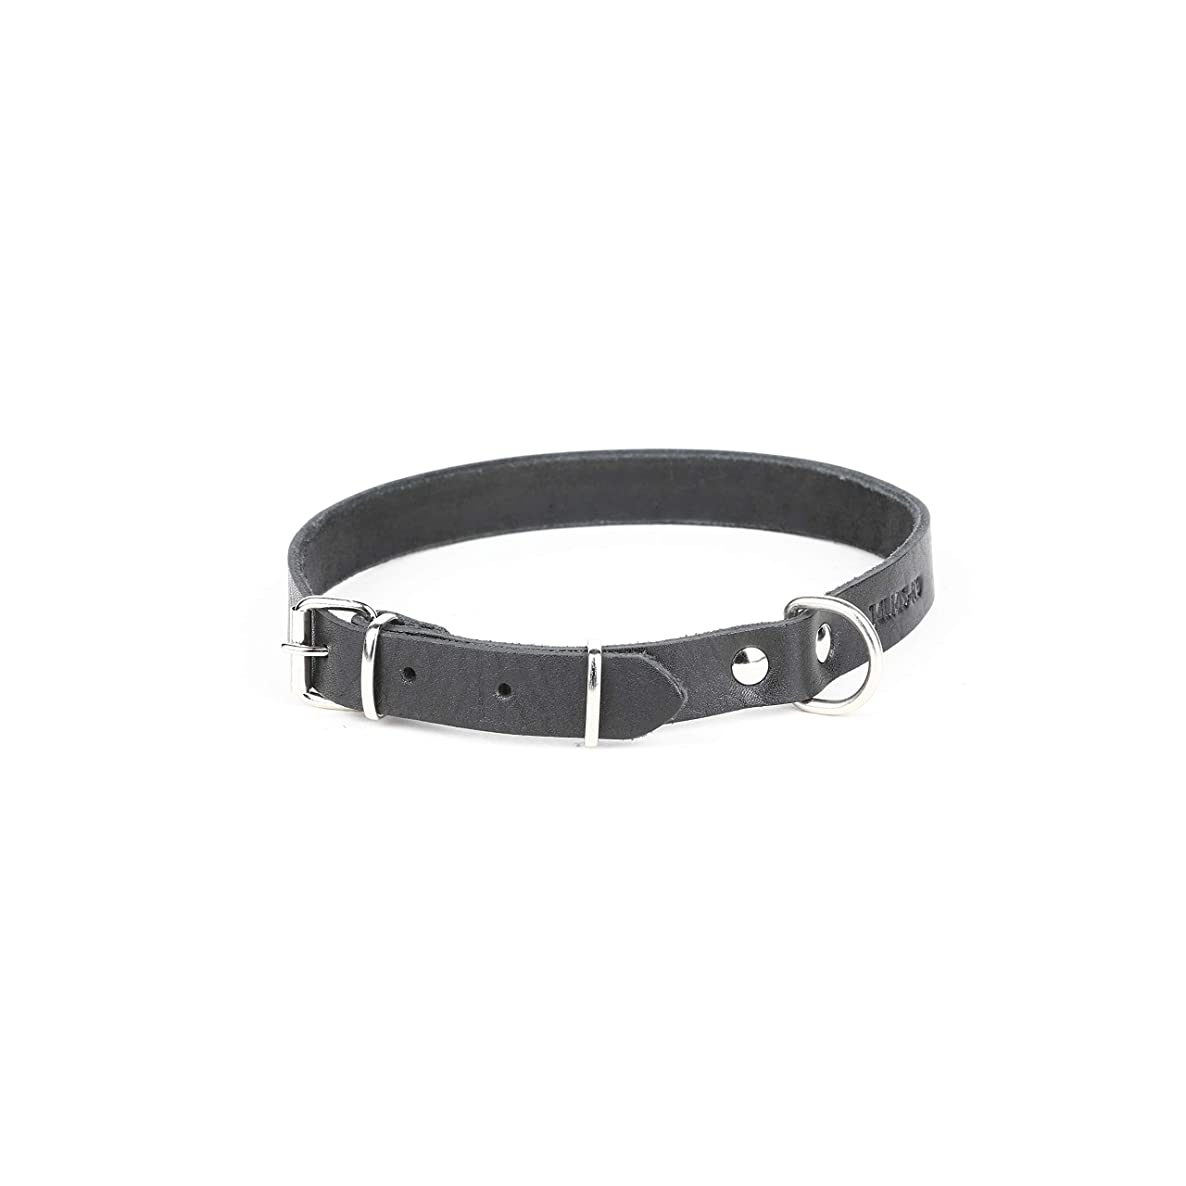 Julius-K9 16045-S Riveted Collar Leather